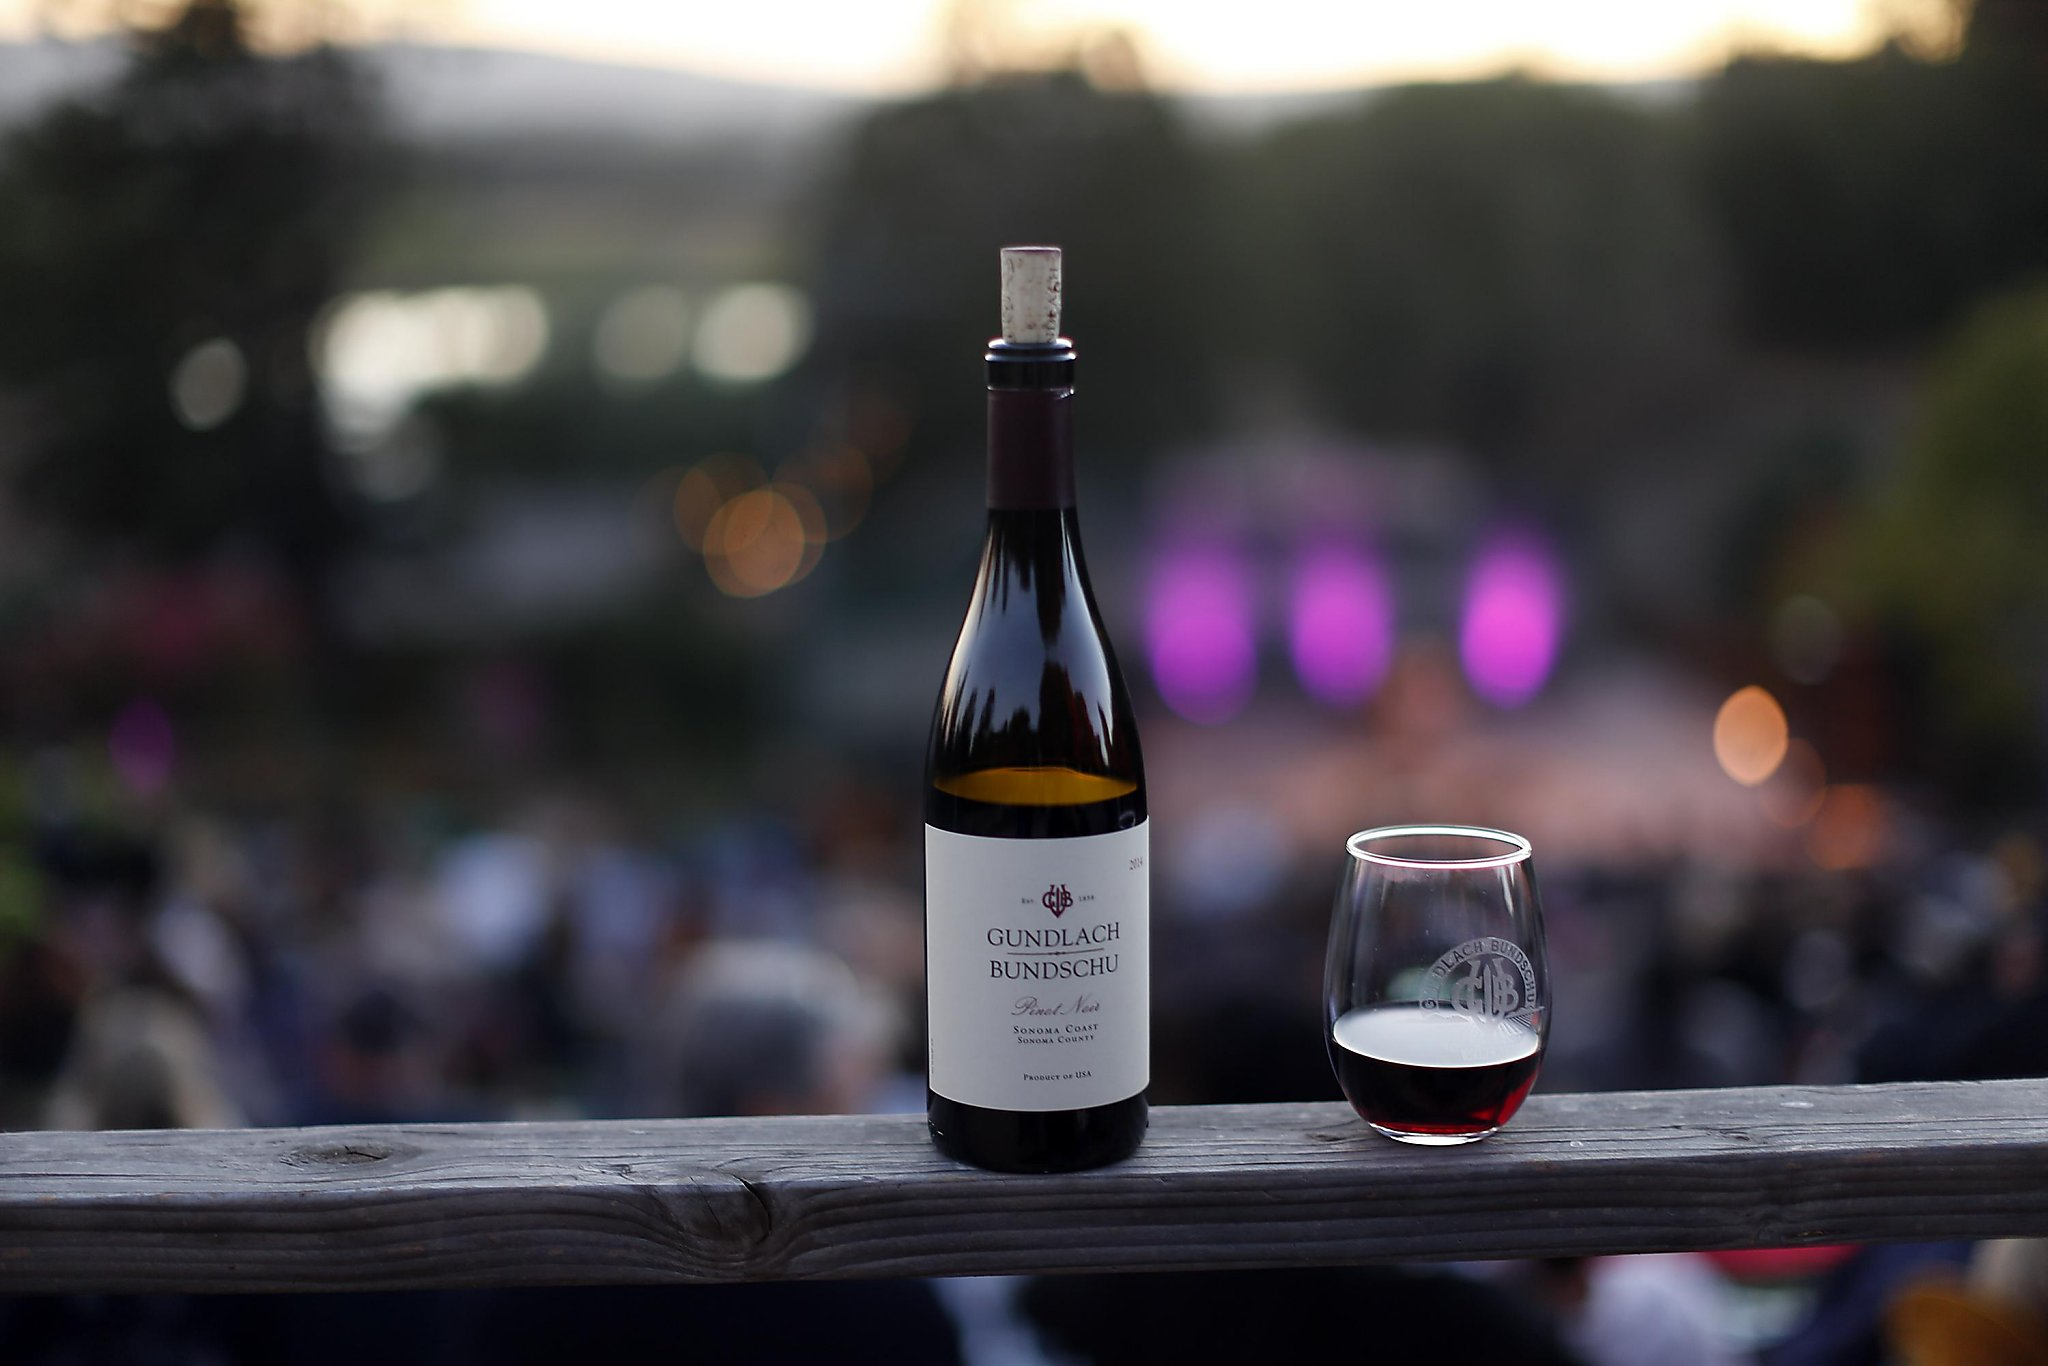 California's lesser-known wine hotspot was named best small town to visit in America — take a look